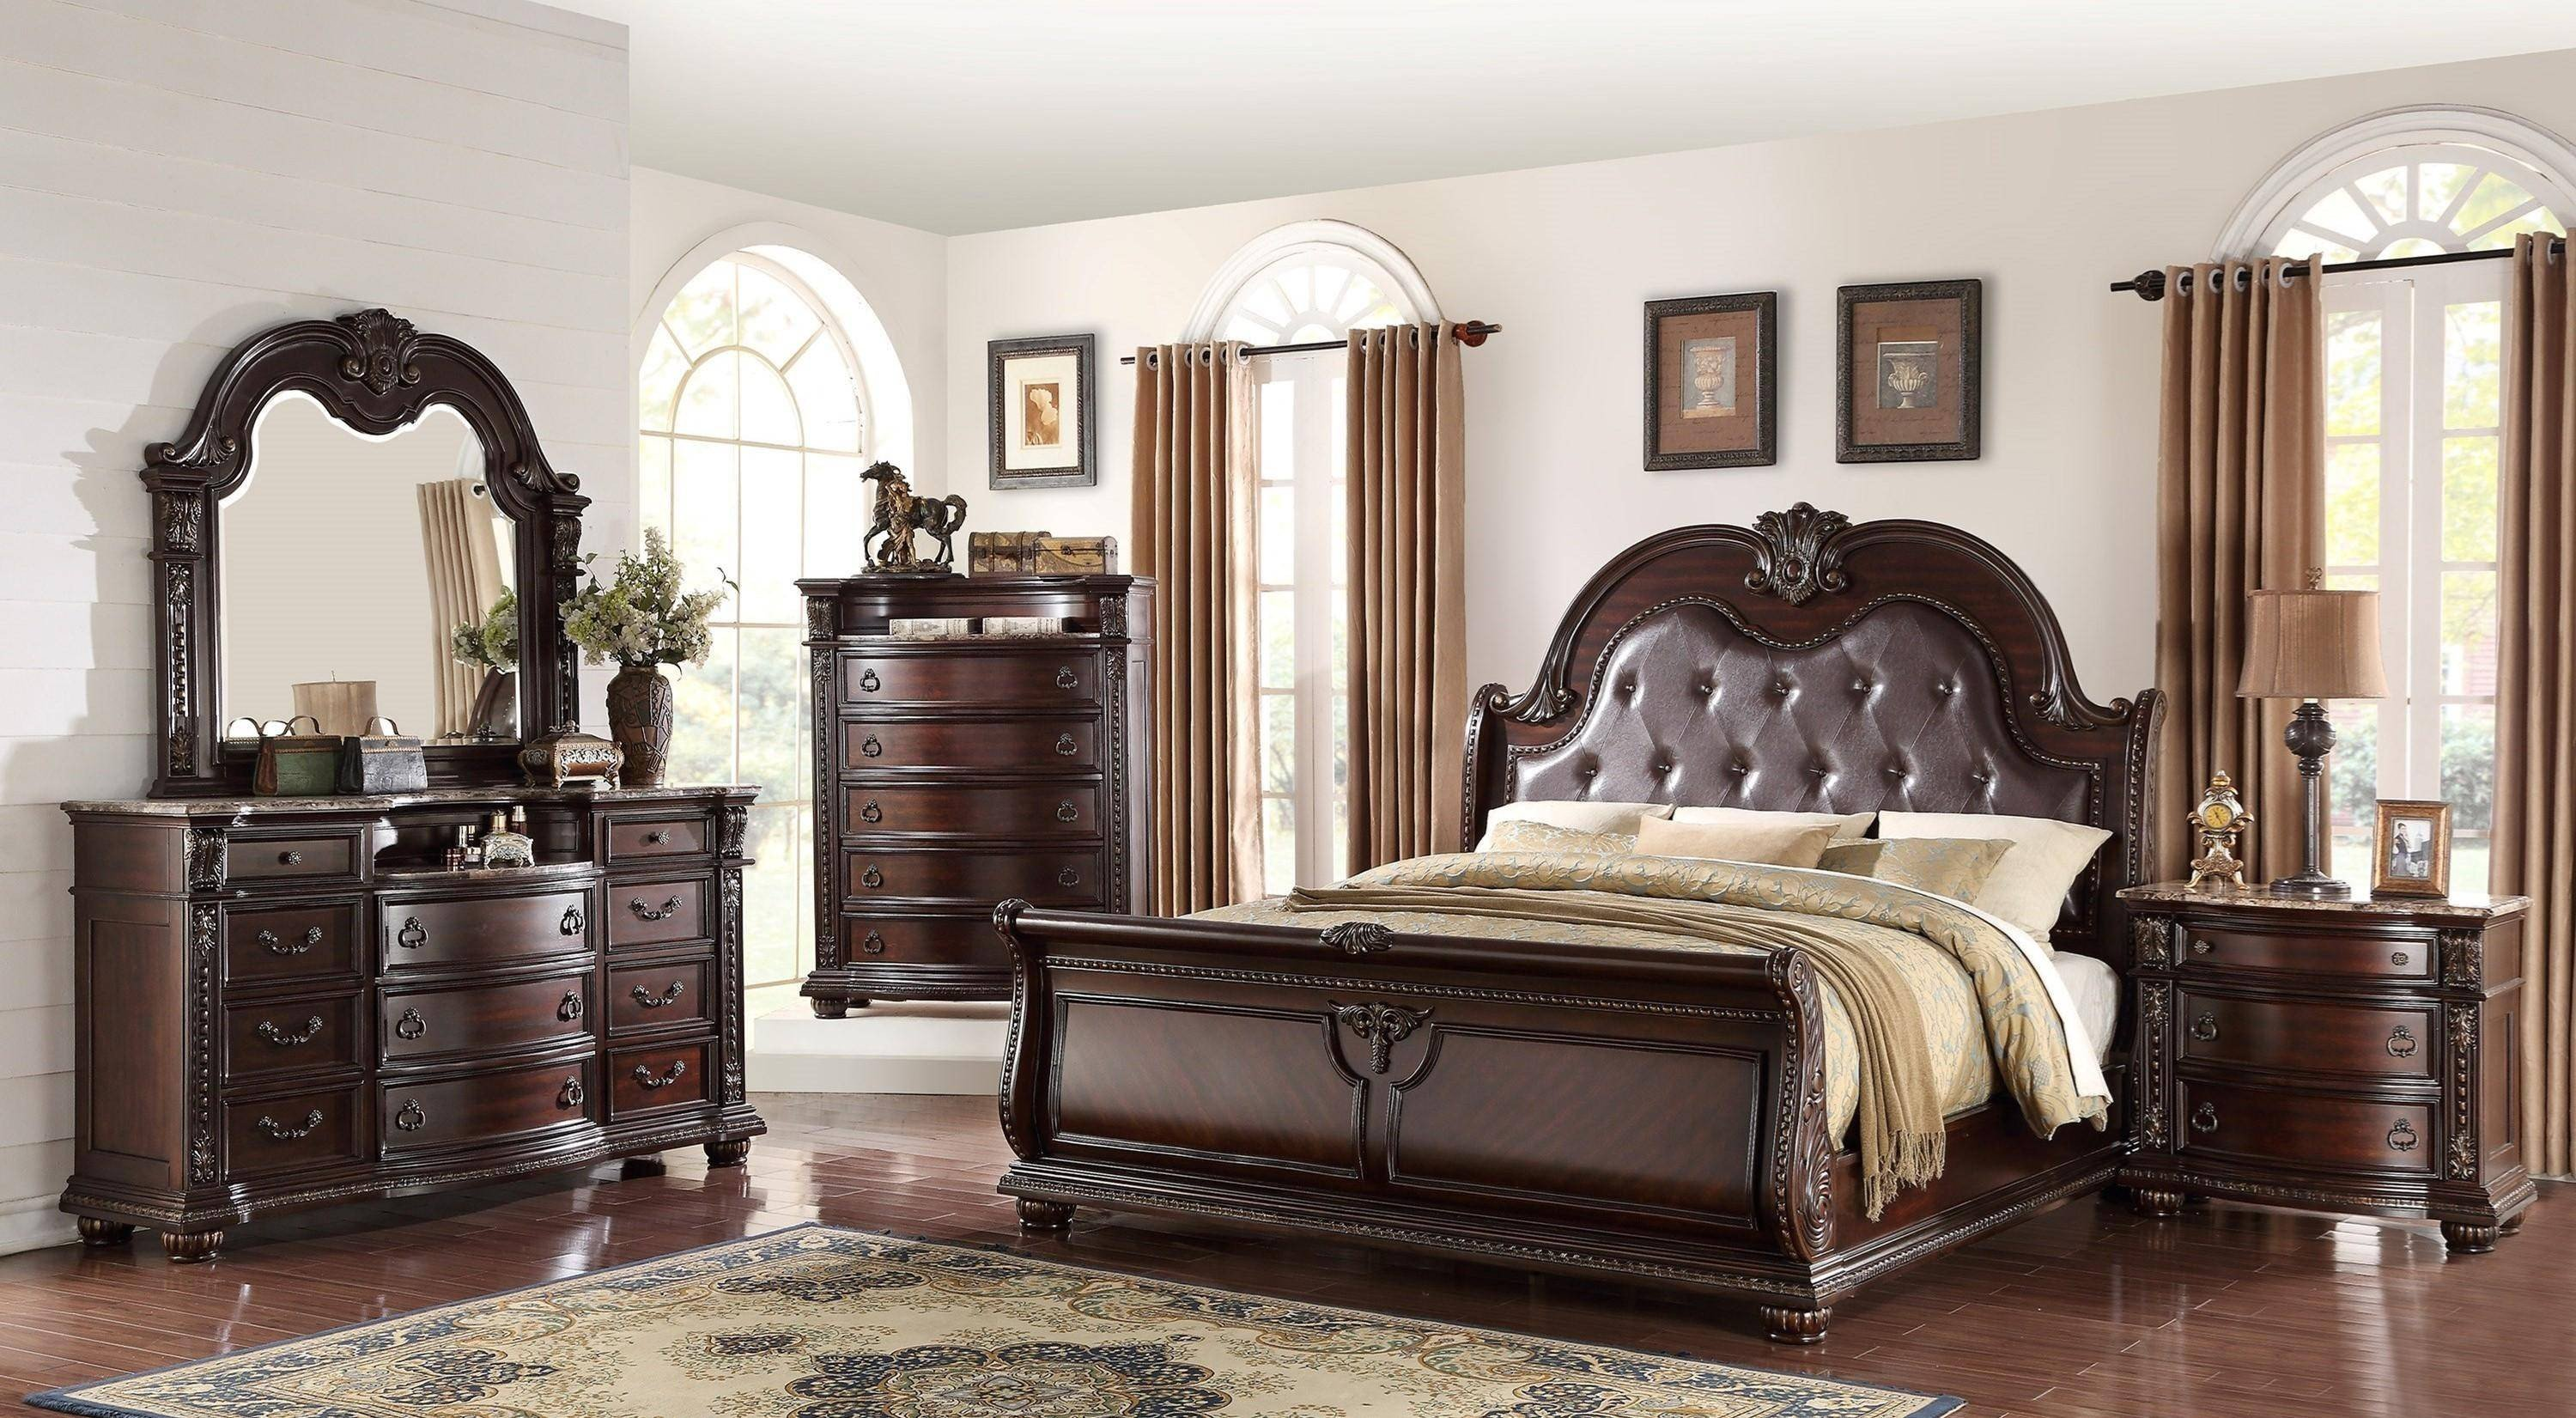 Solid Cherry Wood Bedroom Furniture Inspirational Crown Mark B1600 Stanley Cherry Finish solid Wood King